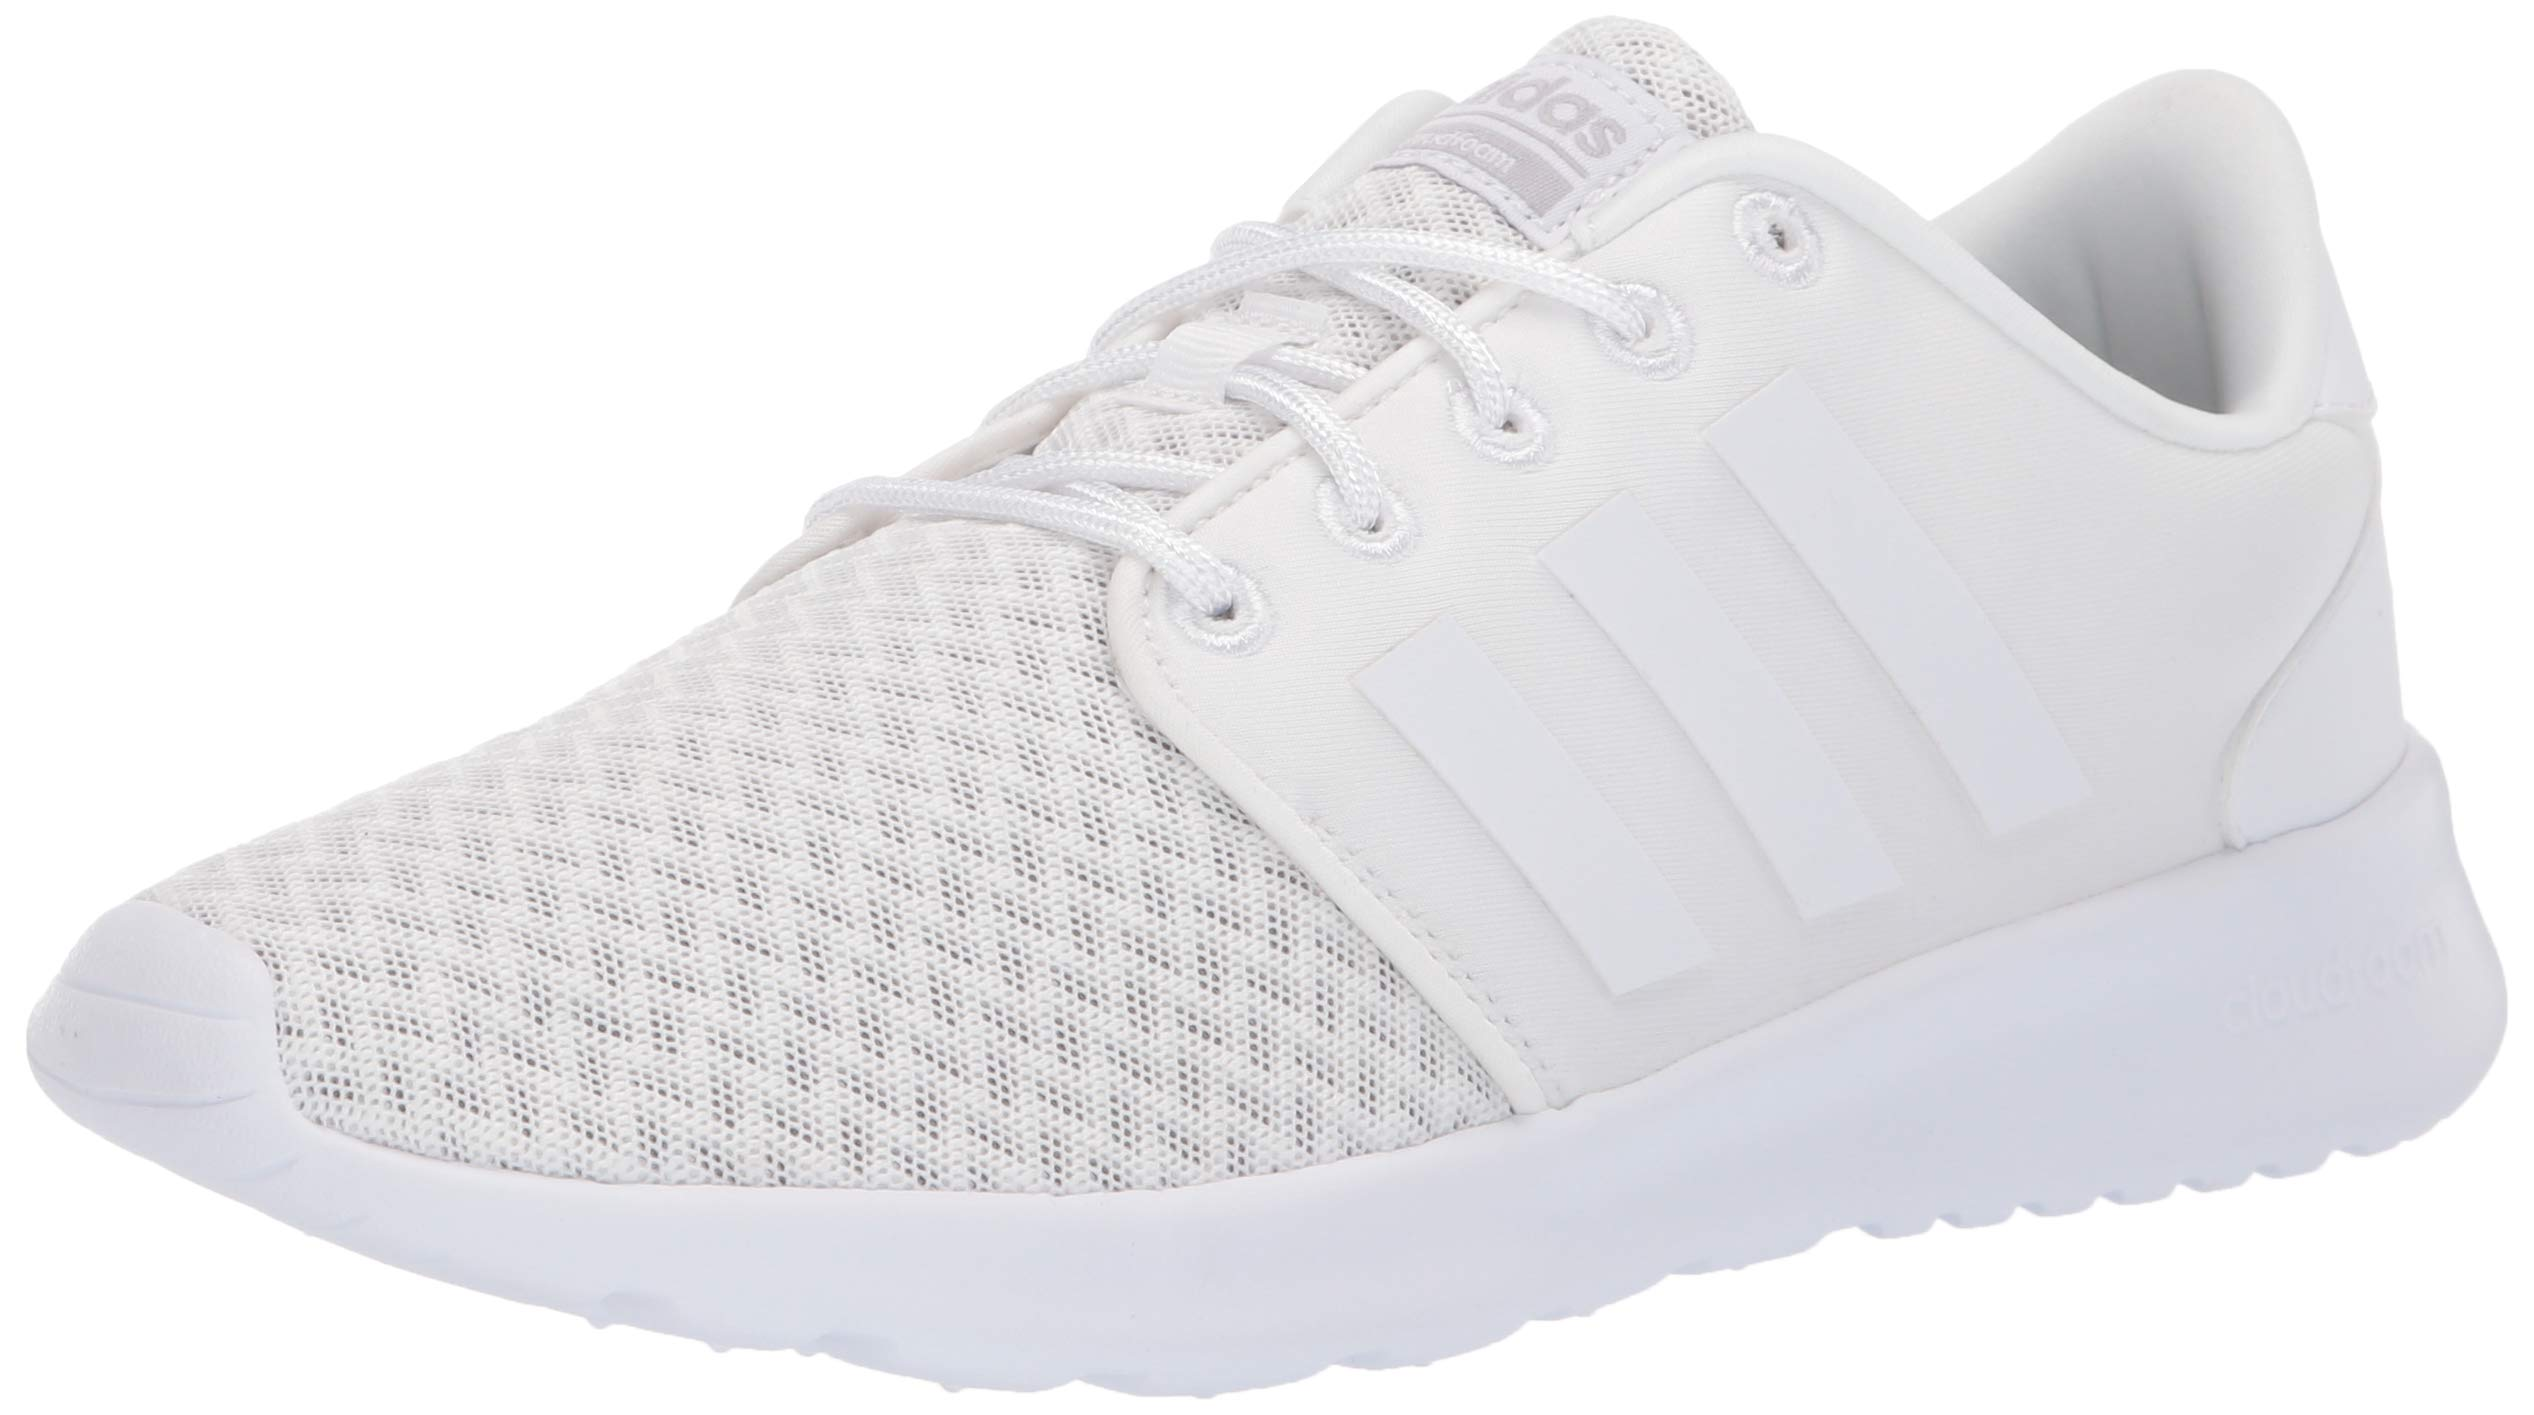 adidas Women's Cloudfoam QT Racer Shoes, White/Grey, 10 M US by adidas